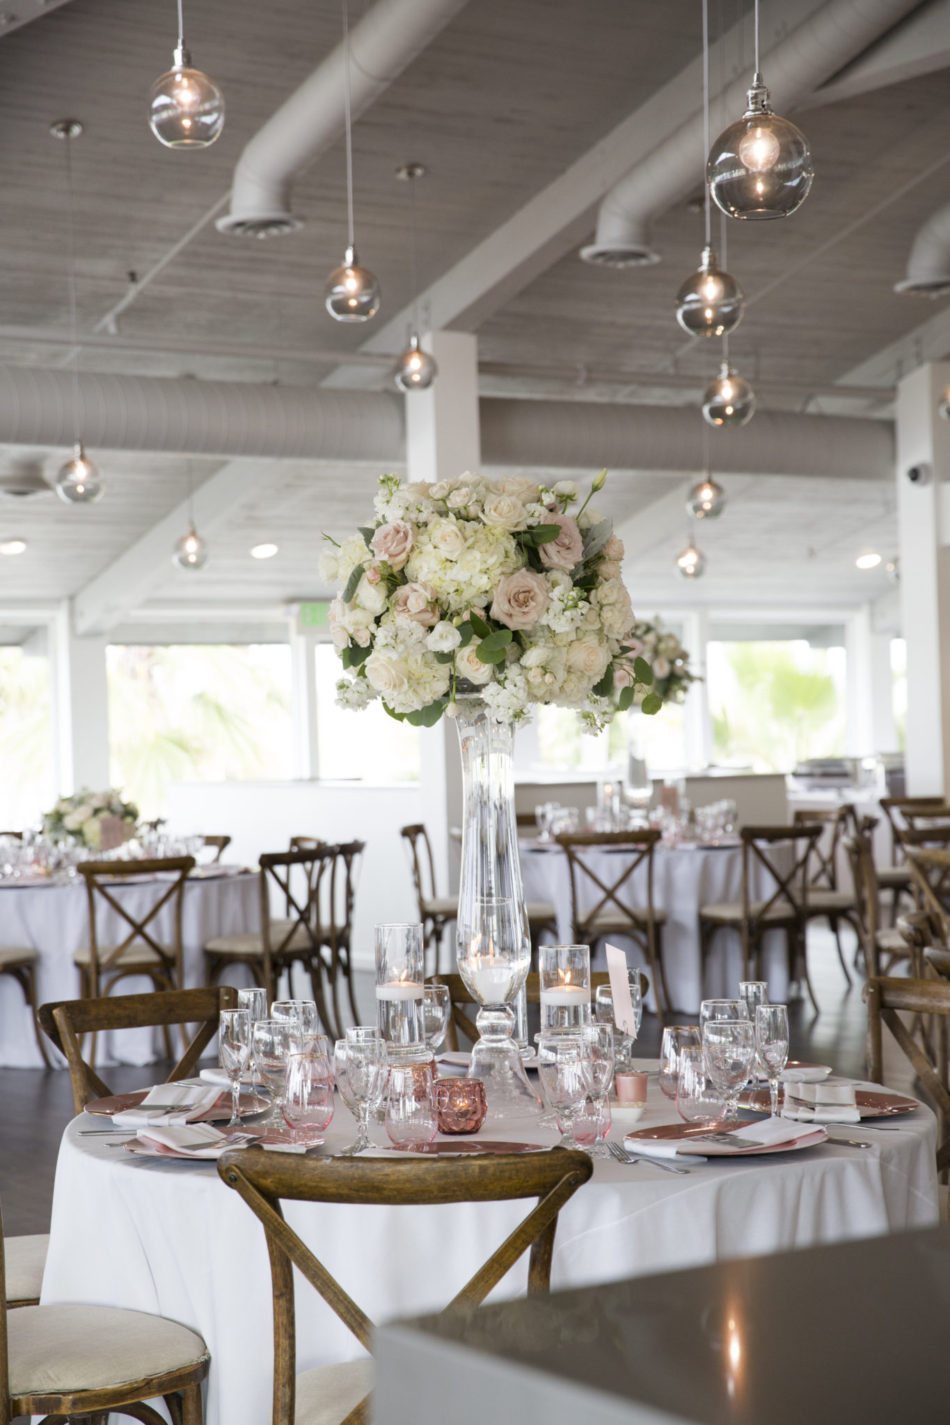 reception design, blush reception design, coastal reception design, floral design, florist, wedding florist, wedding flowers, orange county weddings, orange county wedding florist, orange county florist, orange county floral design, flowers by cina